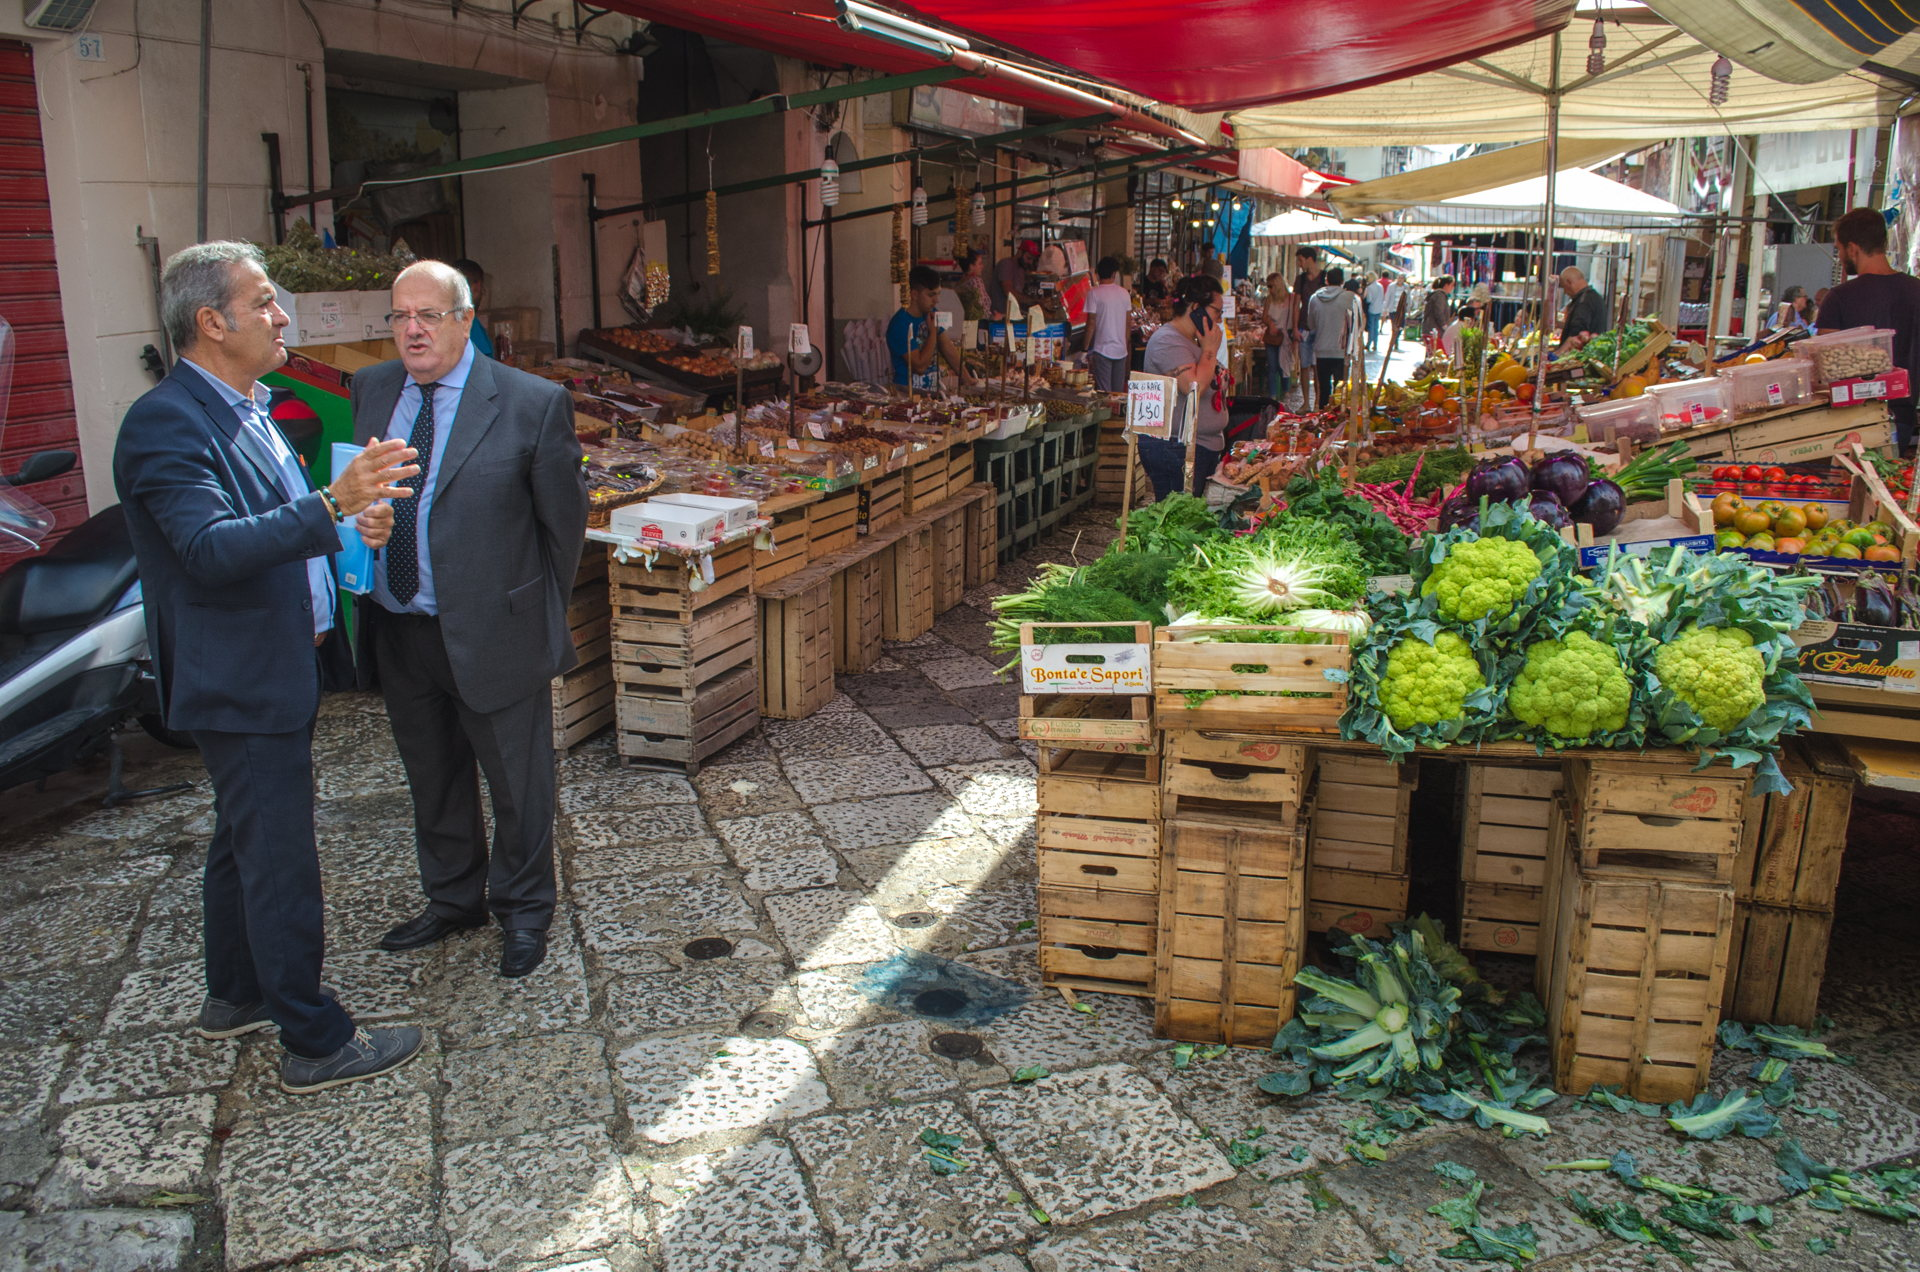 palermo, street market, market, sicily, best places to visit in sicily, italy, sicily, europe, travel, traveling sicily, where to stay in palermo